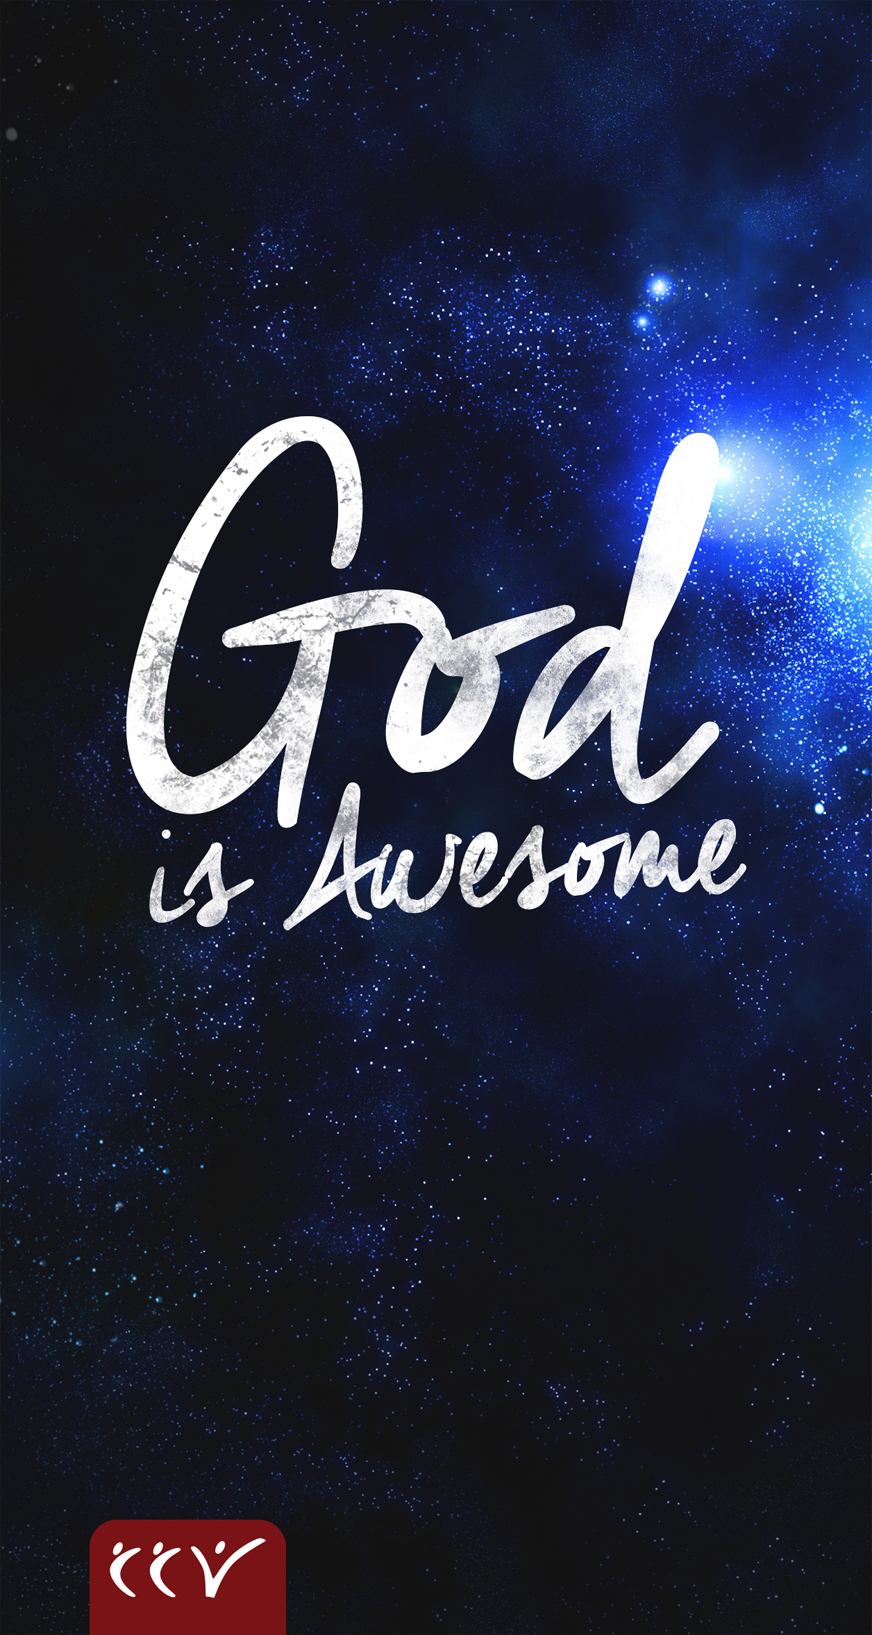 External Website Ads God Is Awesome Wallpapers  Ccv